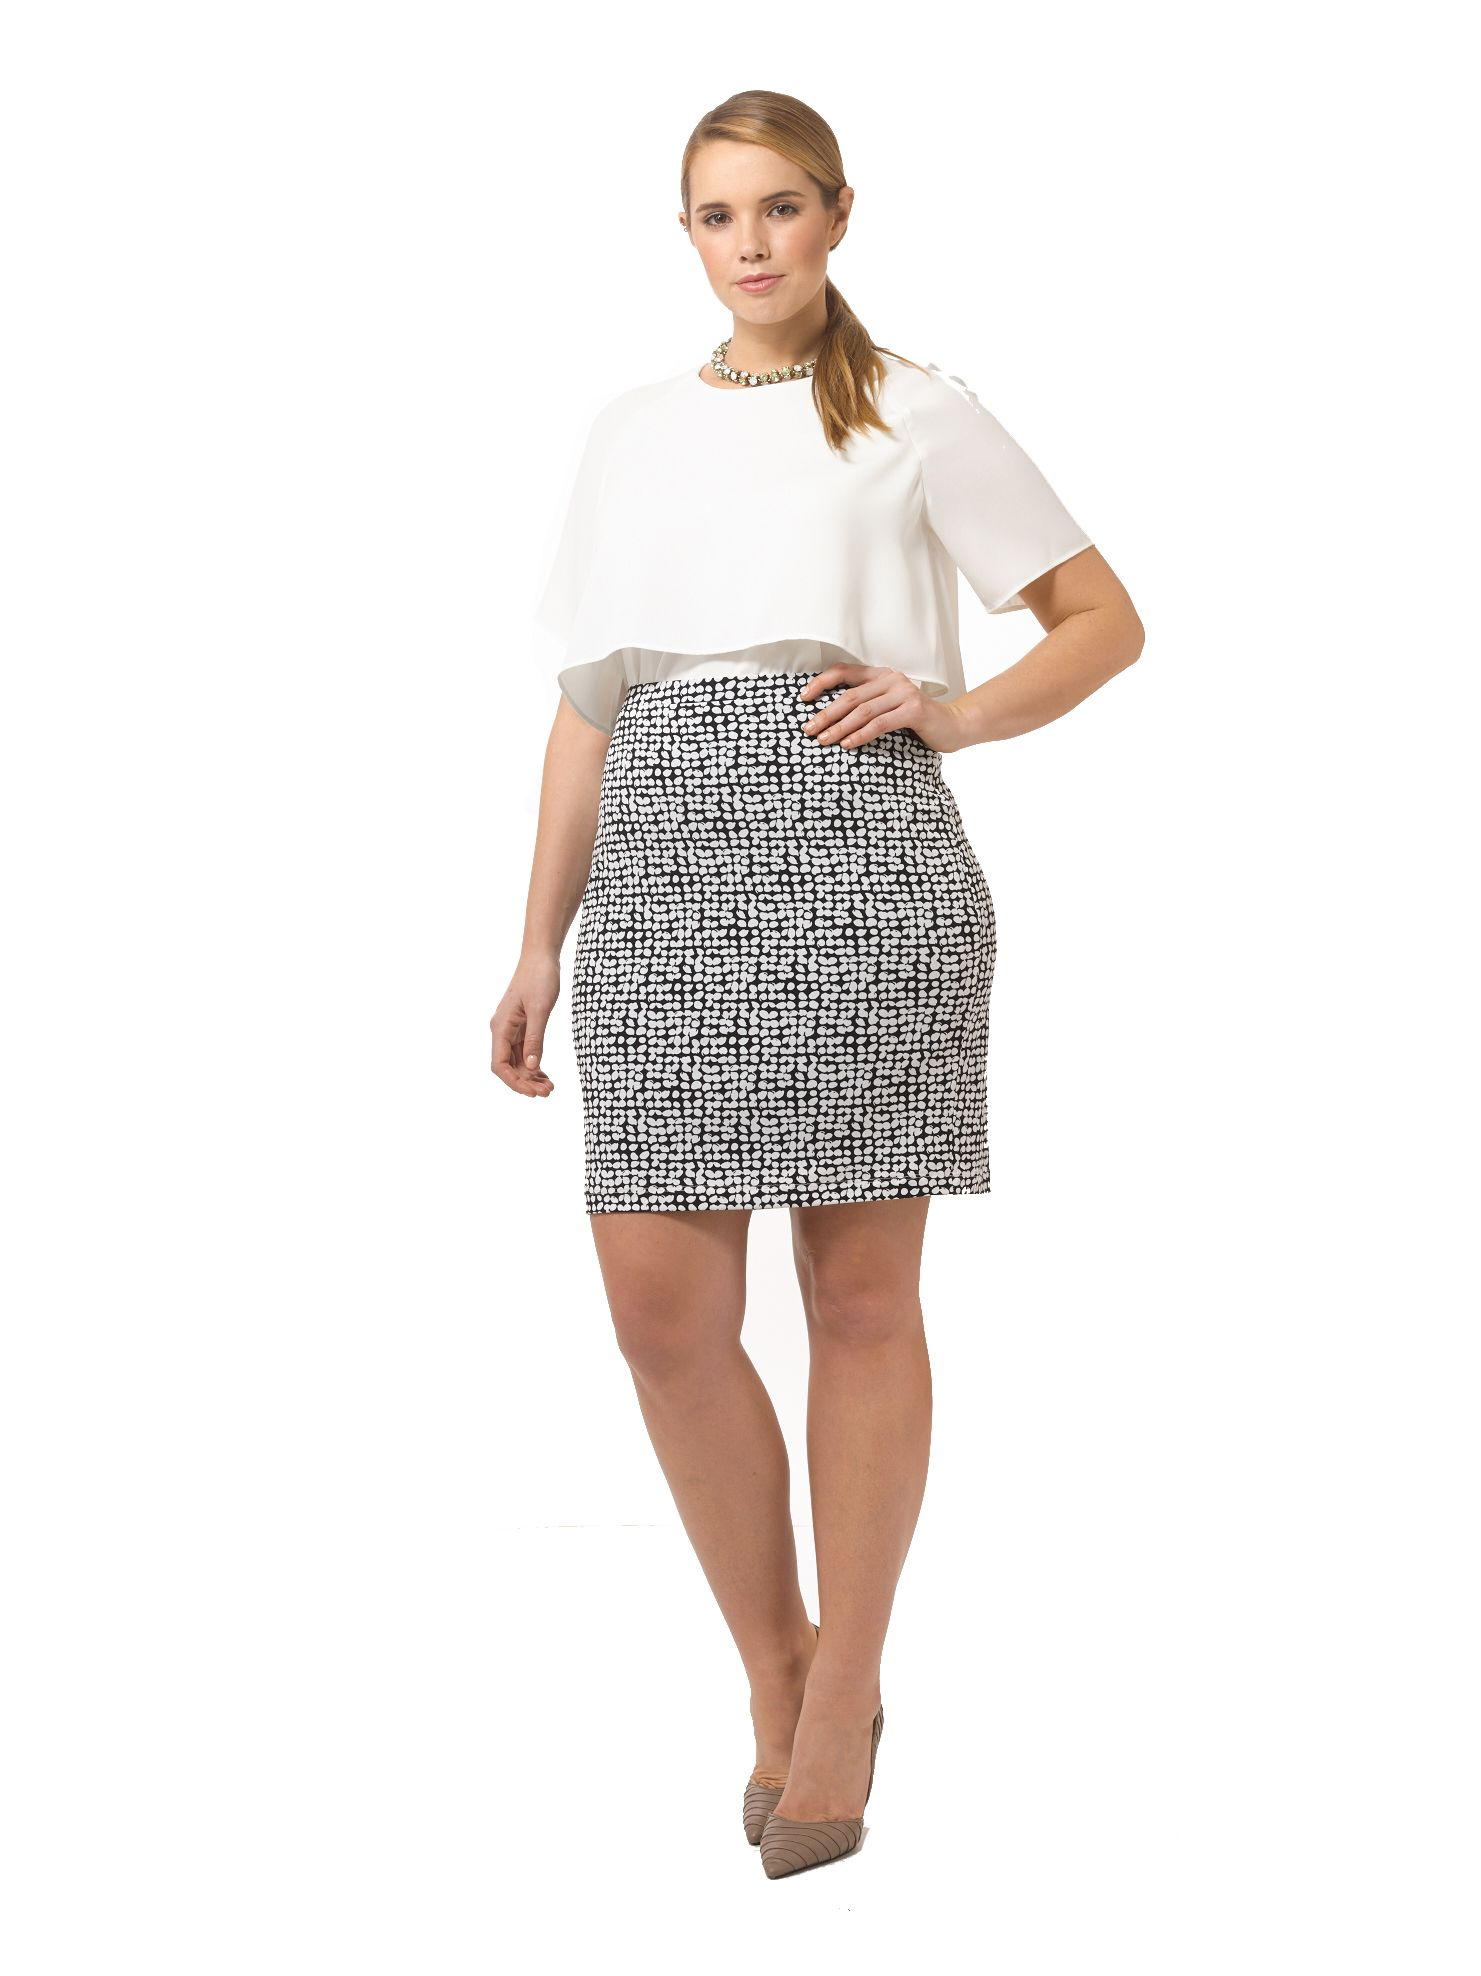 Dot Print Skirt by @karen_kane, Available in sizes M-XL and 0X-3X